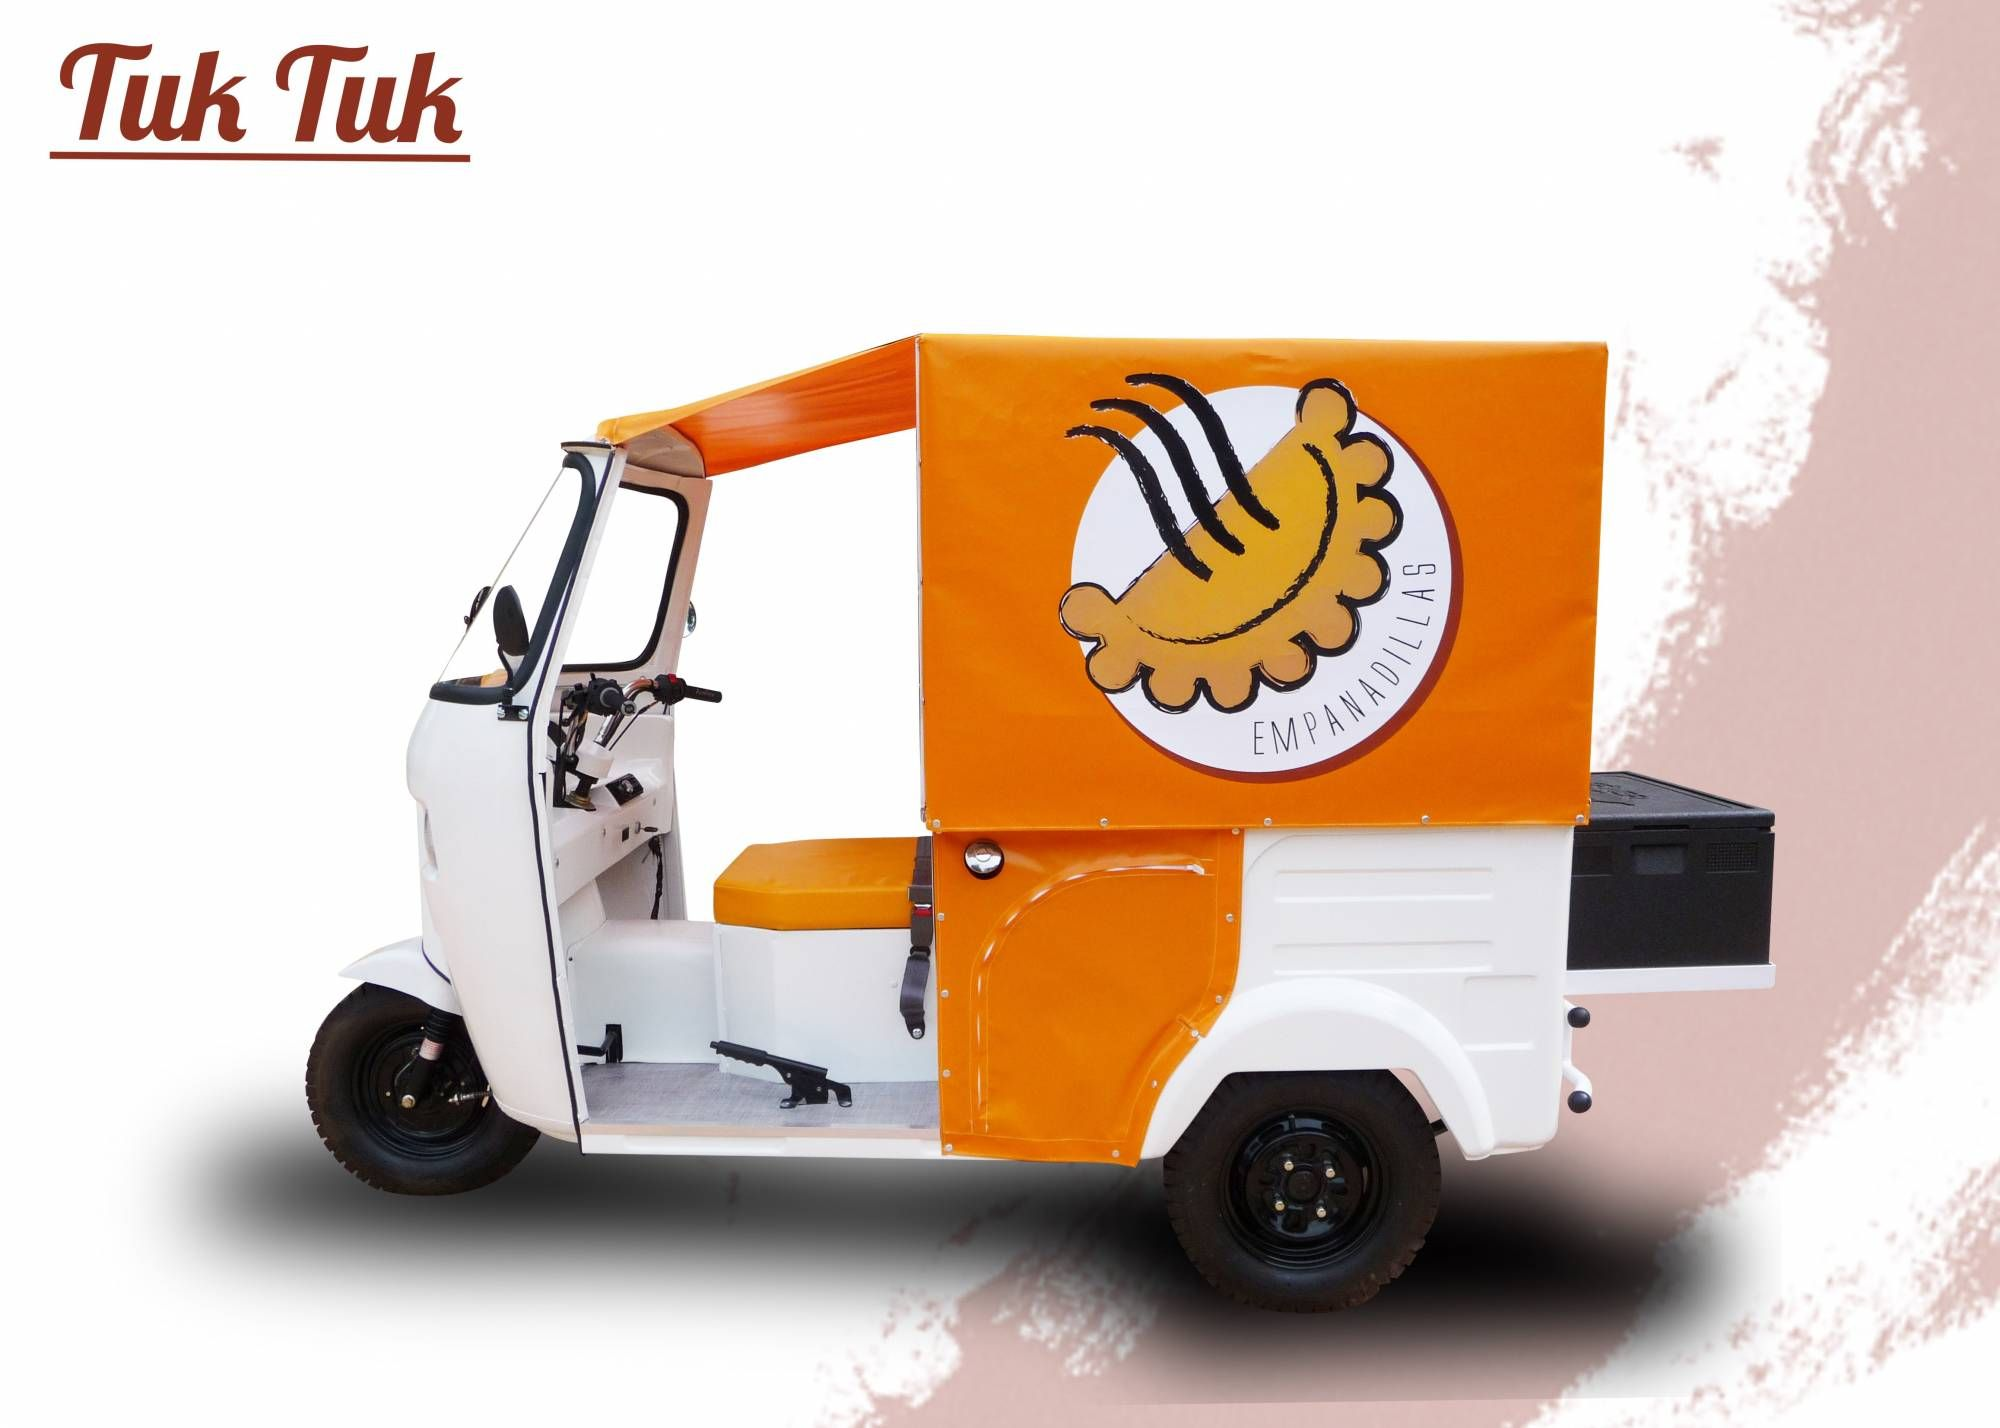 marque mazaki motor produits tuktuk triporteur chariot foodtruck remorque stand. Black Bedroom Furniture Sets. Home Design Ideas